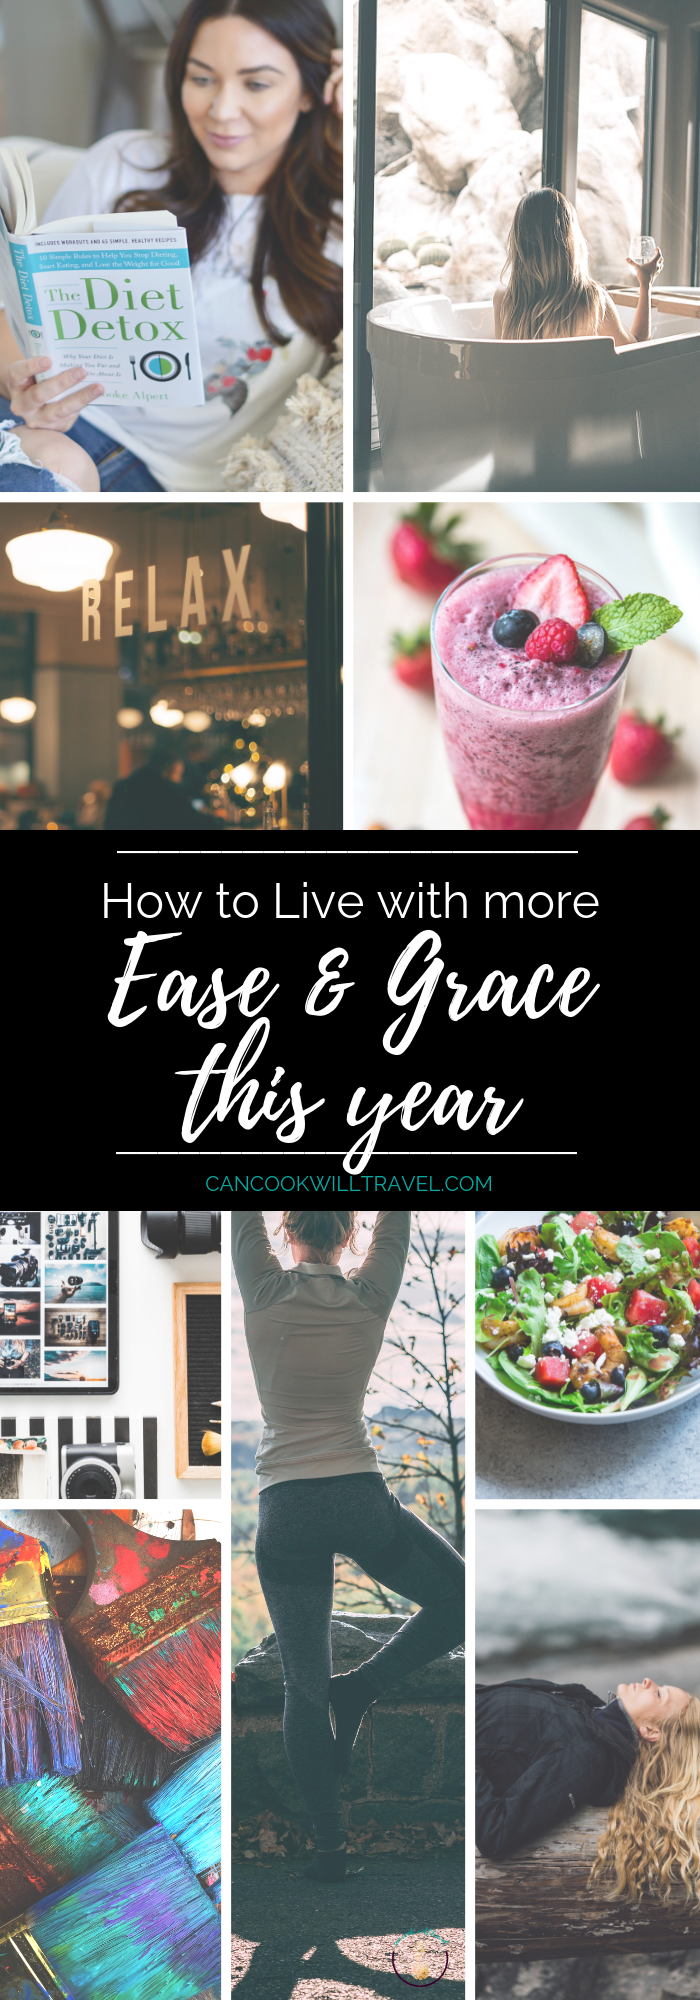 How to Live with more Ease & Grace_Tall